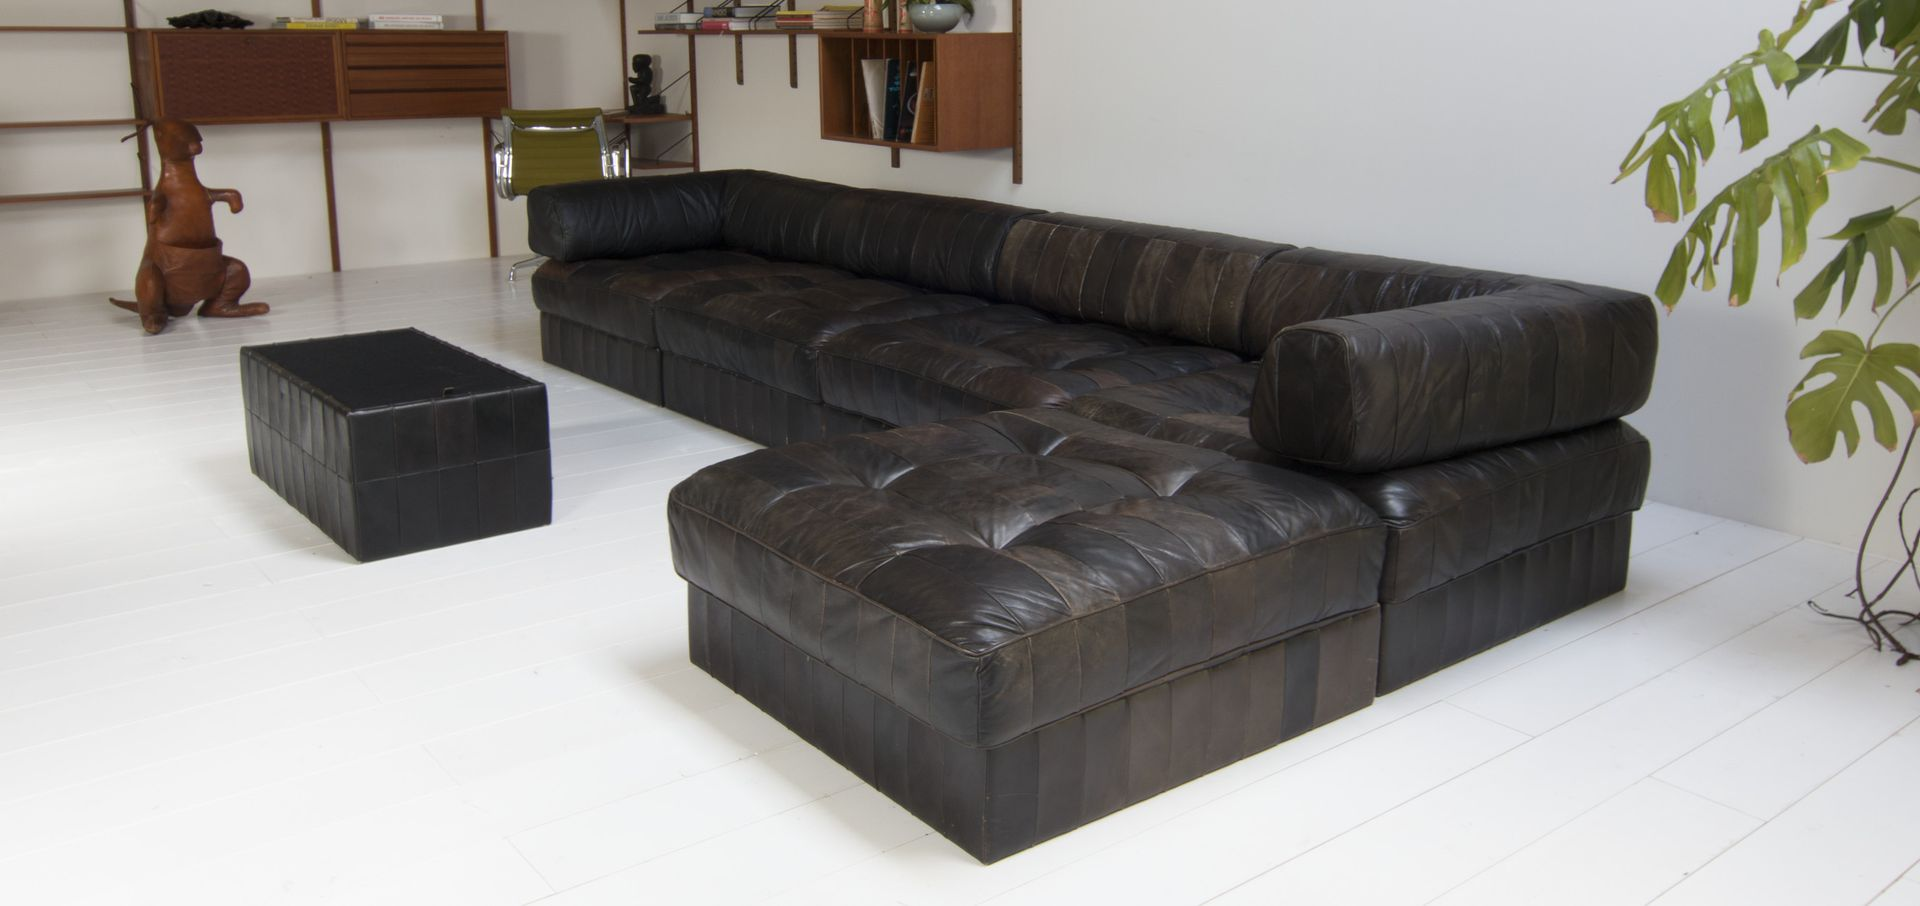 sechsteiliges ds 88 patchwork sofa von de sede 1979 bei pamono kaufen. Black Bedroom Furniture Sets. Home Design Ideas